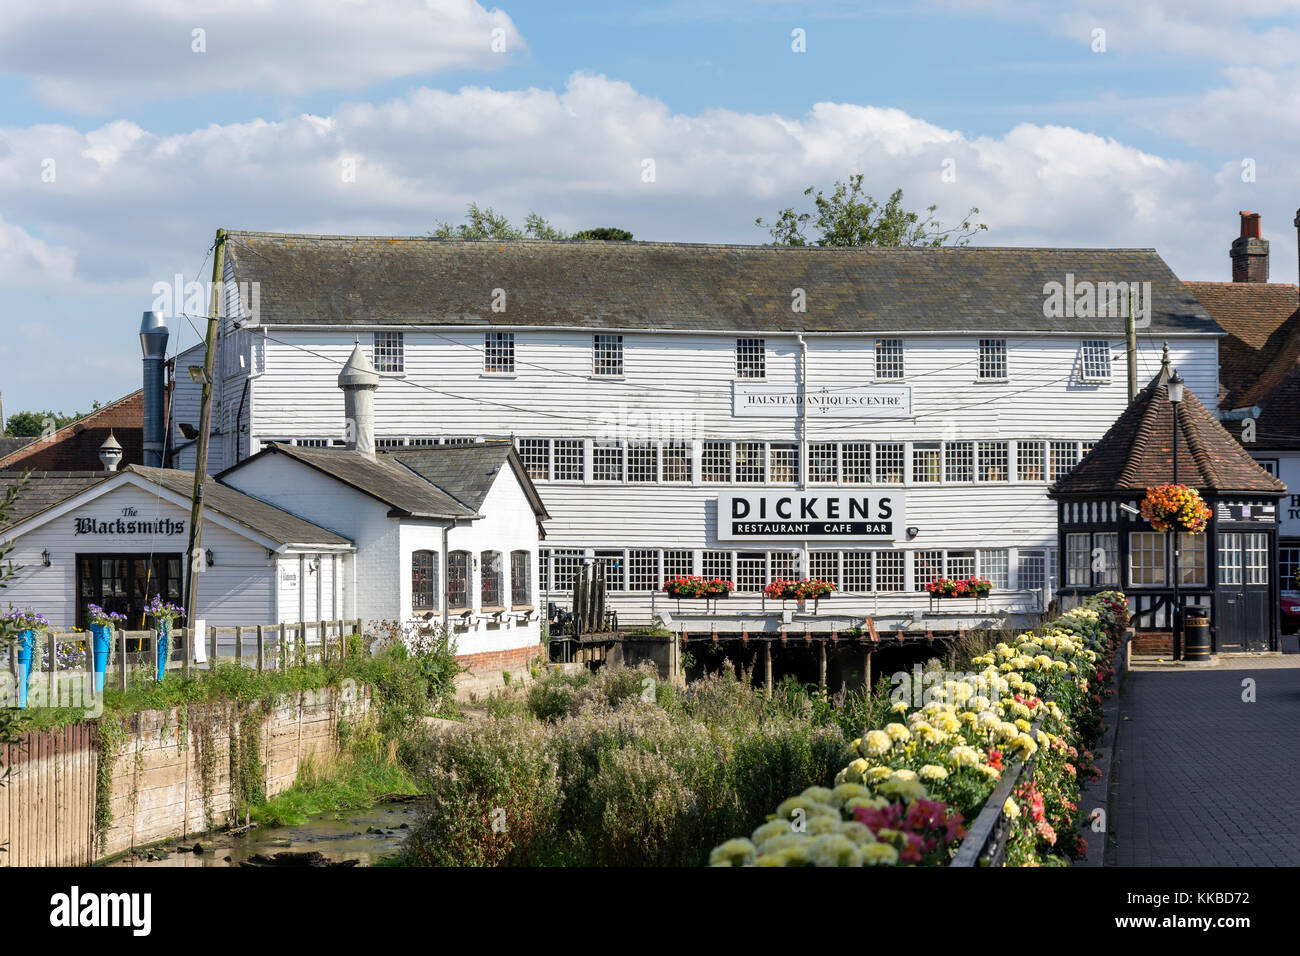 Halstead Antiques Centre, Townsford Mill, The Causeway, Halstead, Essex, England, United Kingdom - Stock Image